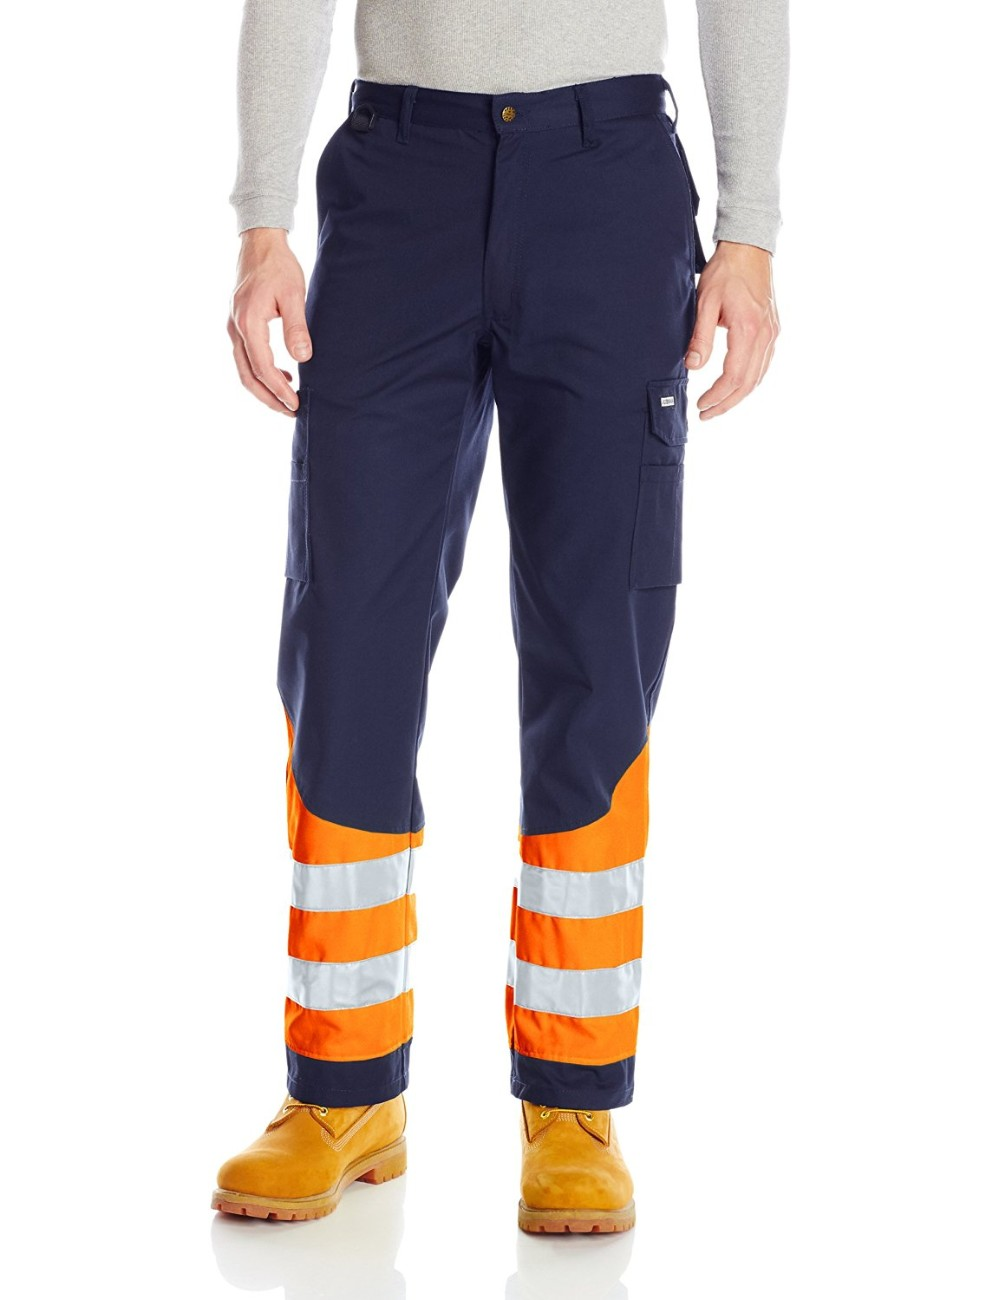 high visibility custom Waterproof High vis reflective Pants